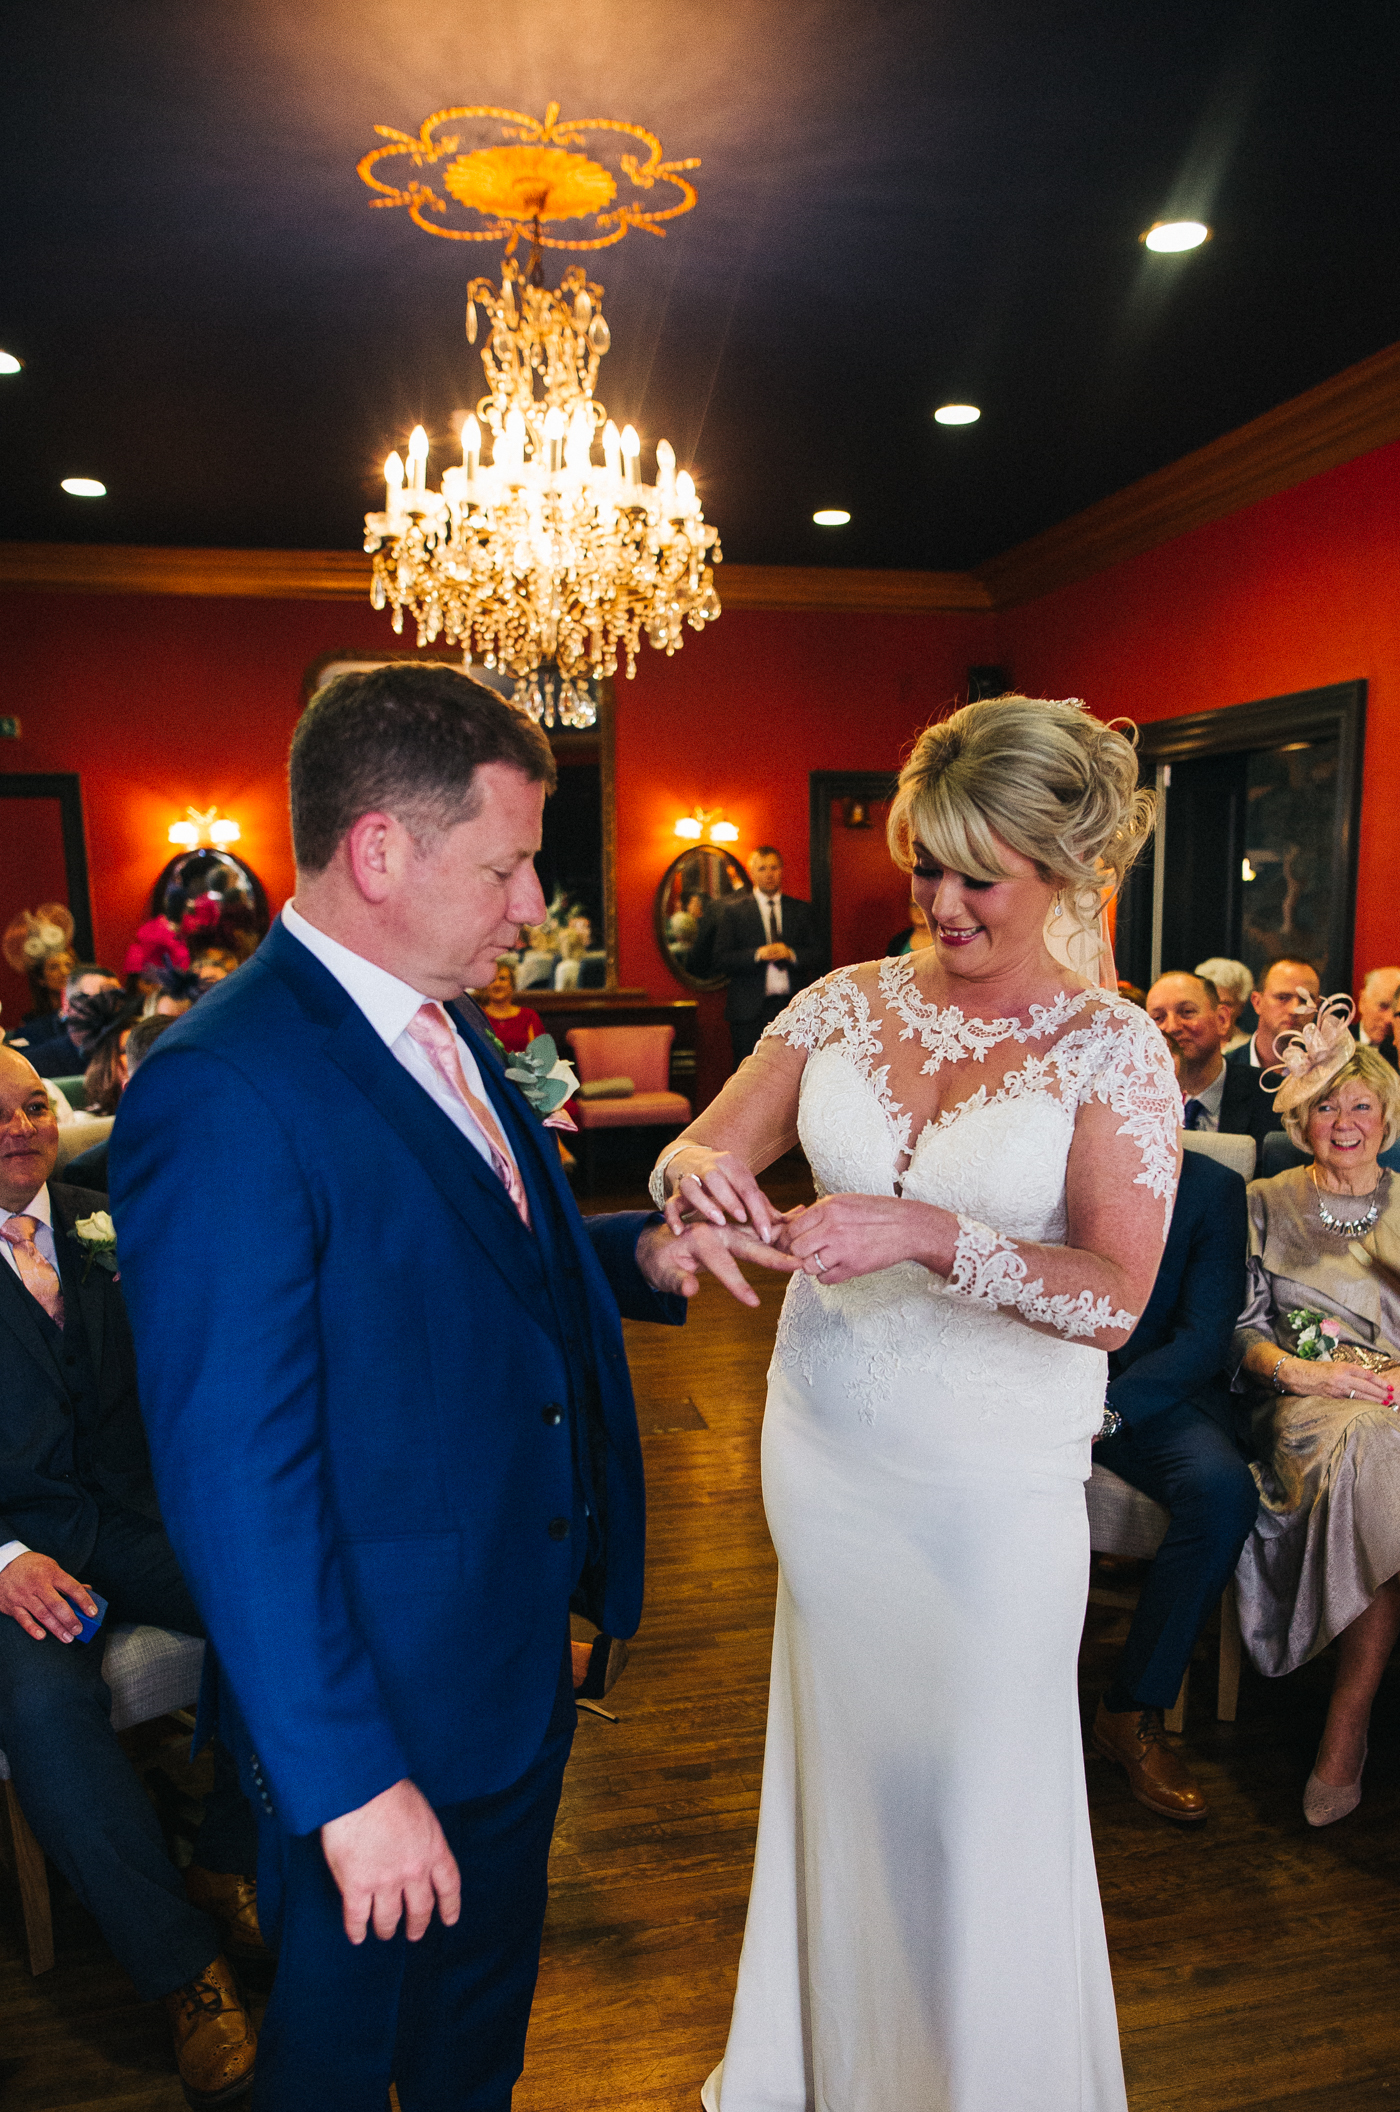 the bride puts the ring on her husband's finger. cleveland tontine wedding teesside north yorkshire - relaxed and creative wedding photographer